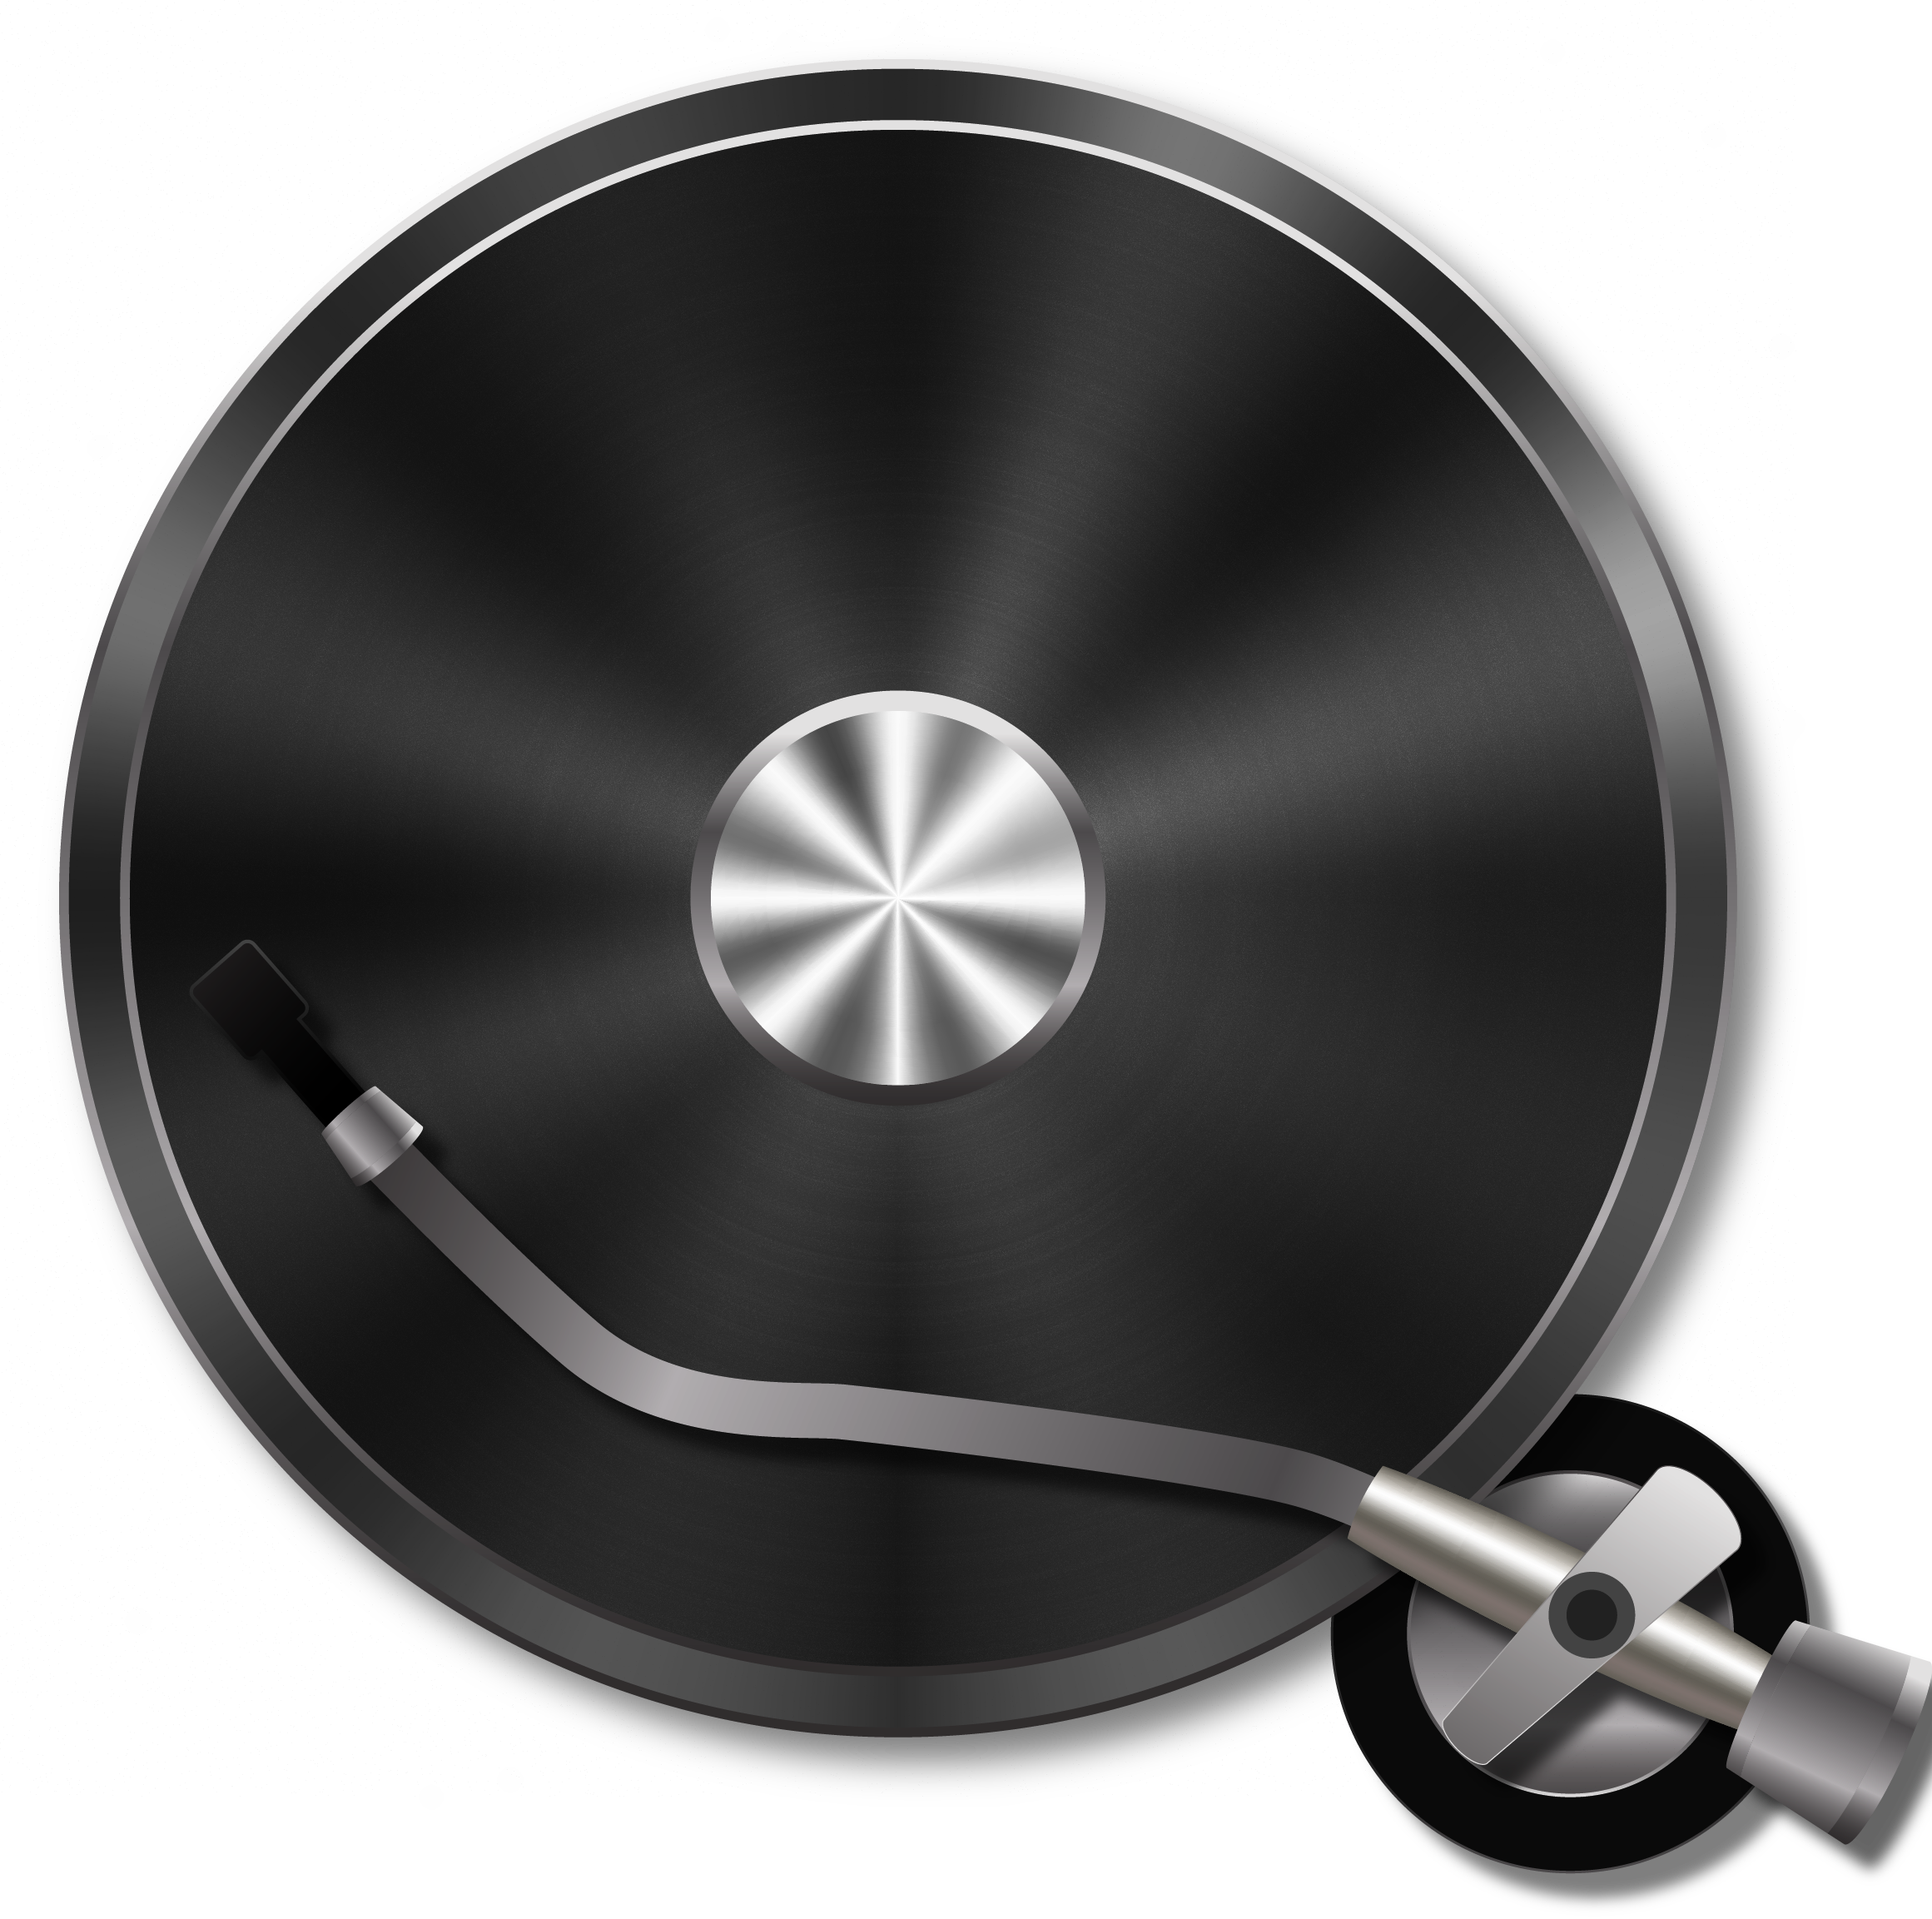 Png phonography video. Phonograph record compact disc